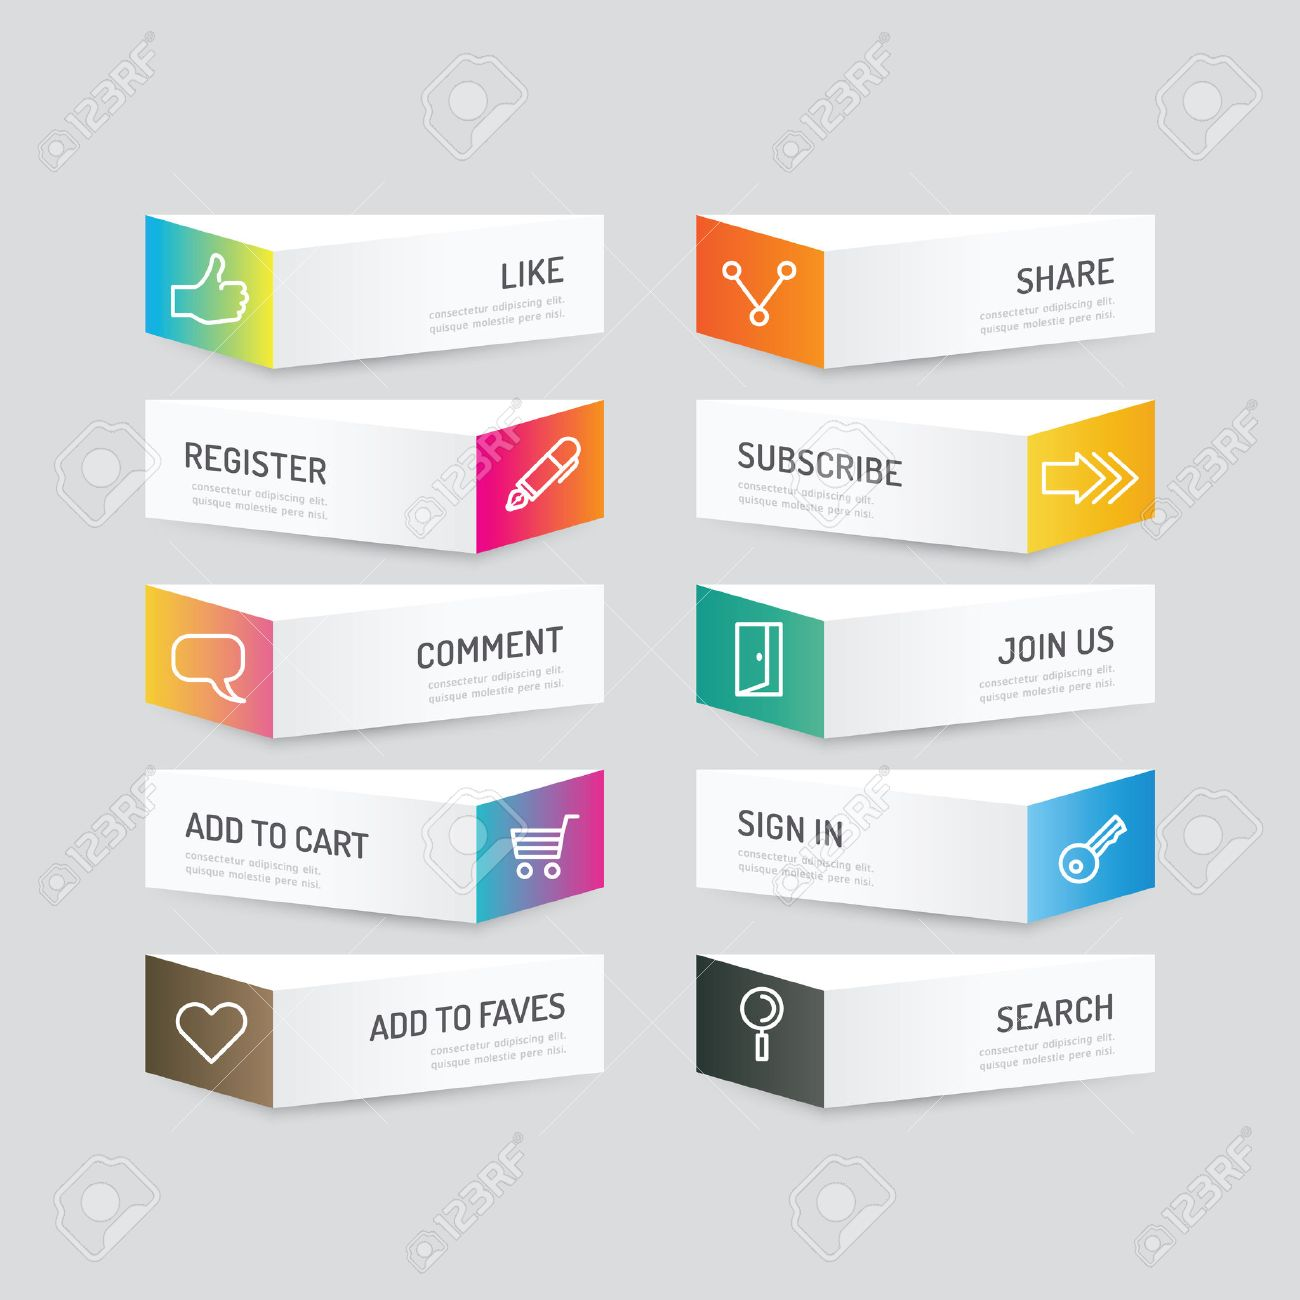 Modern banner button with social icon design options. Vector illustration. can be used for infographic workflow layout, banner, abstract, colour, graphic or website layout vector Standard-Bild - 42761517